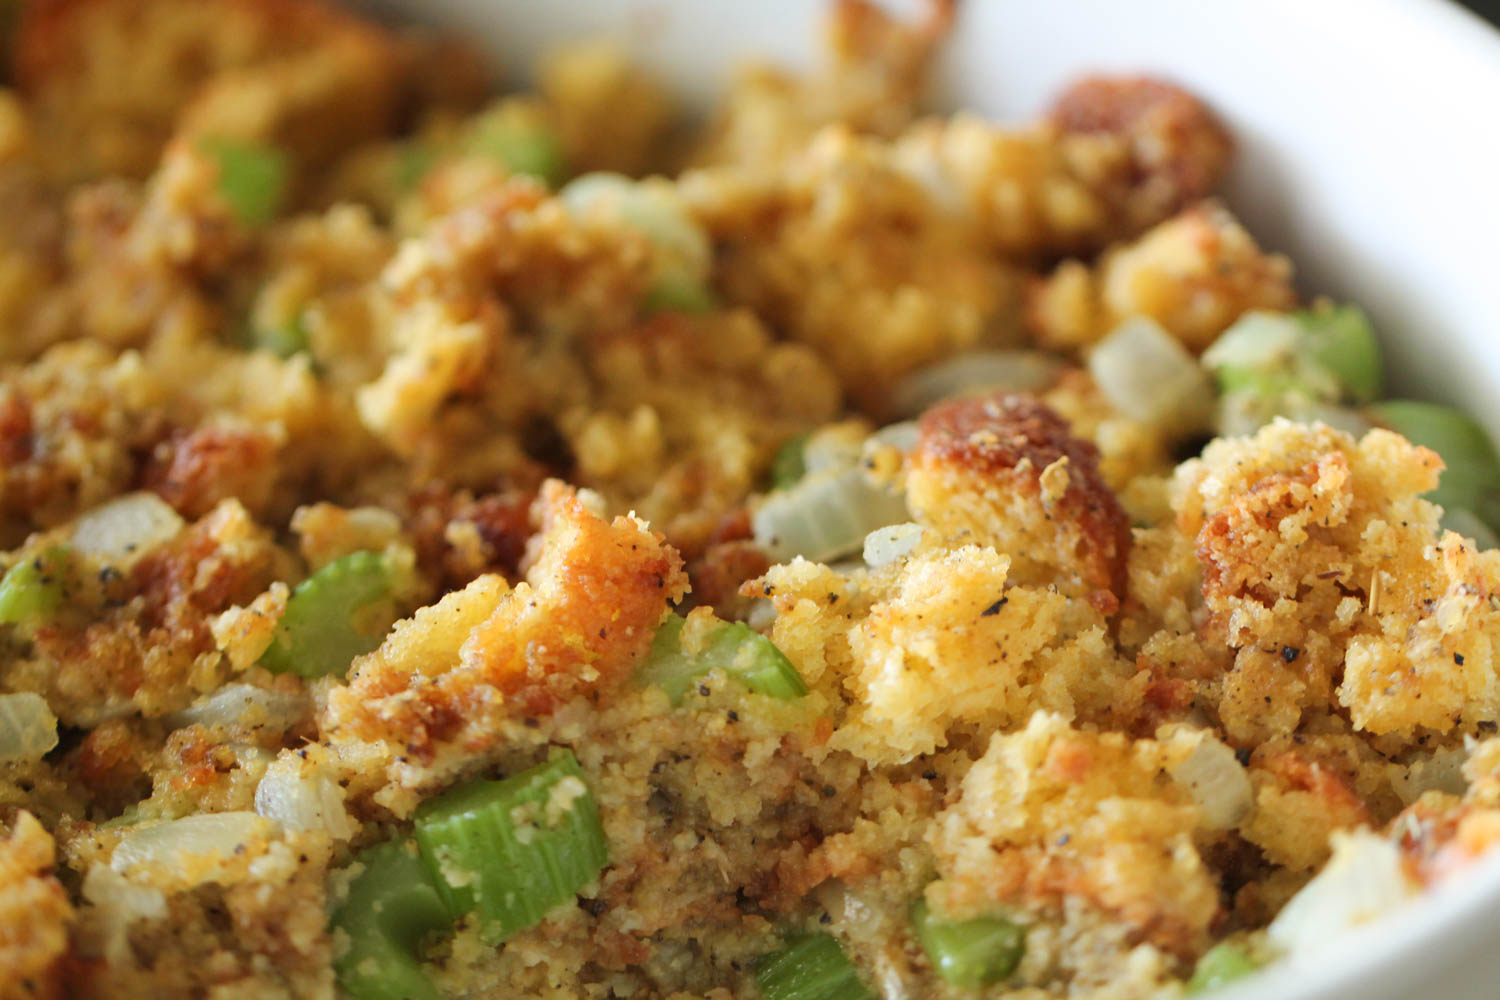 Homemade Corn Bread Stuffing in pan with close up image.